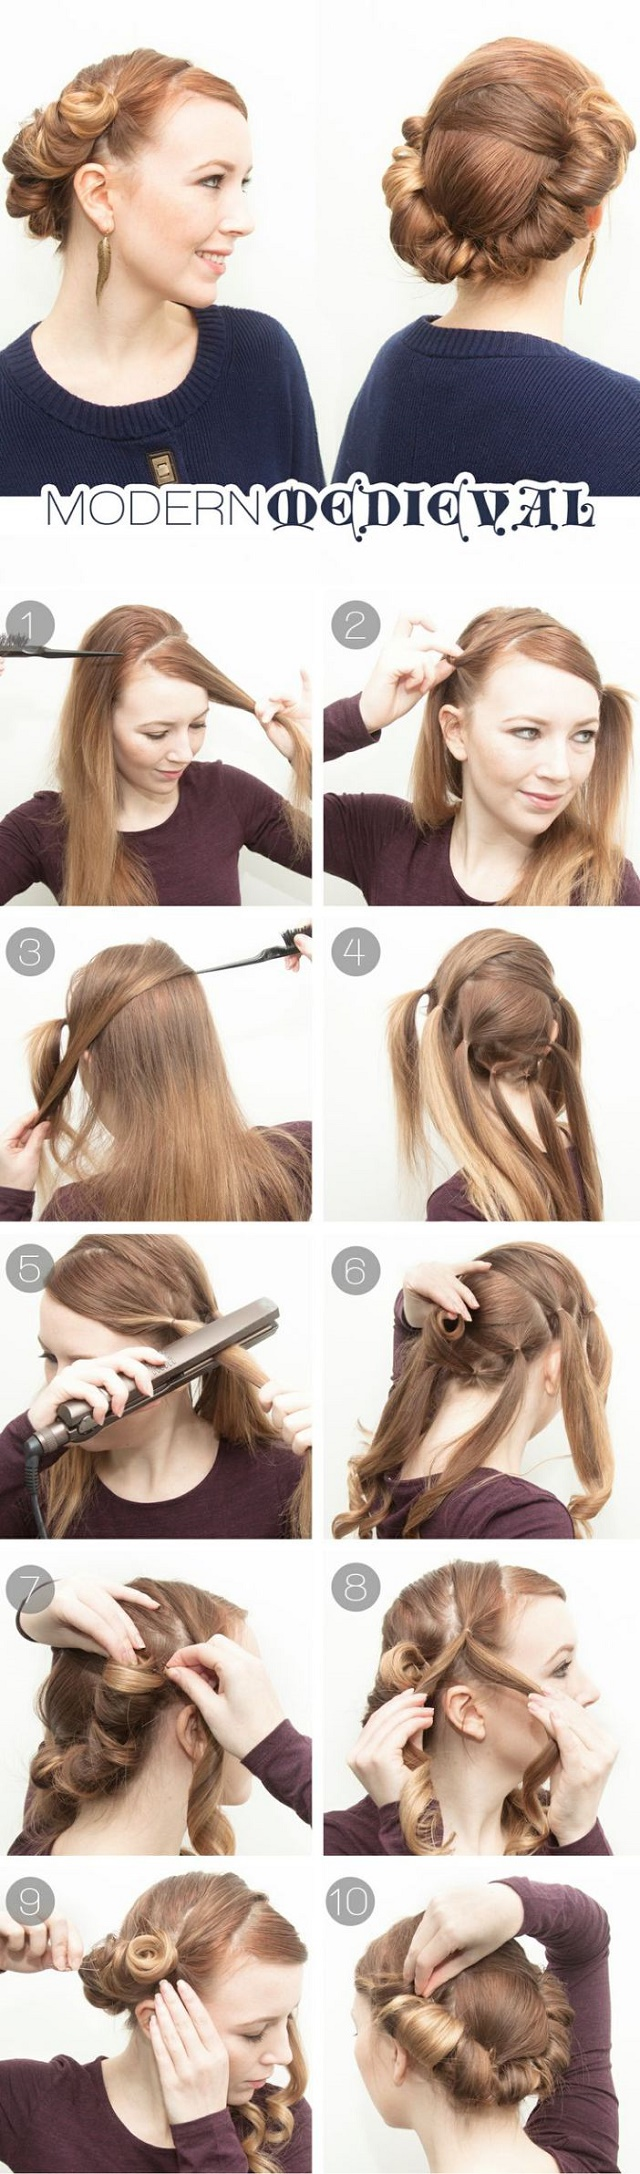 How to do hairstyles step by step for short hair